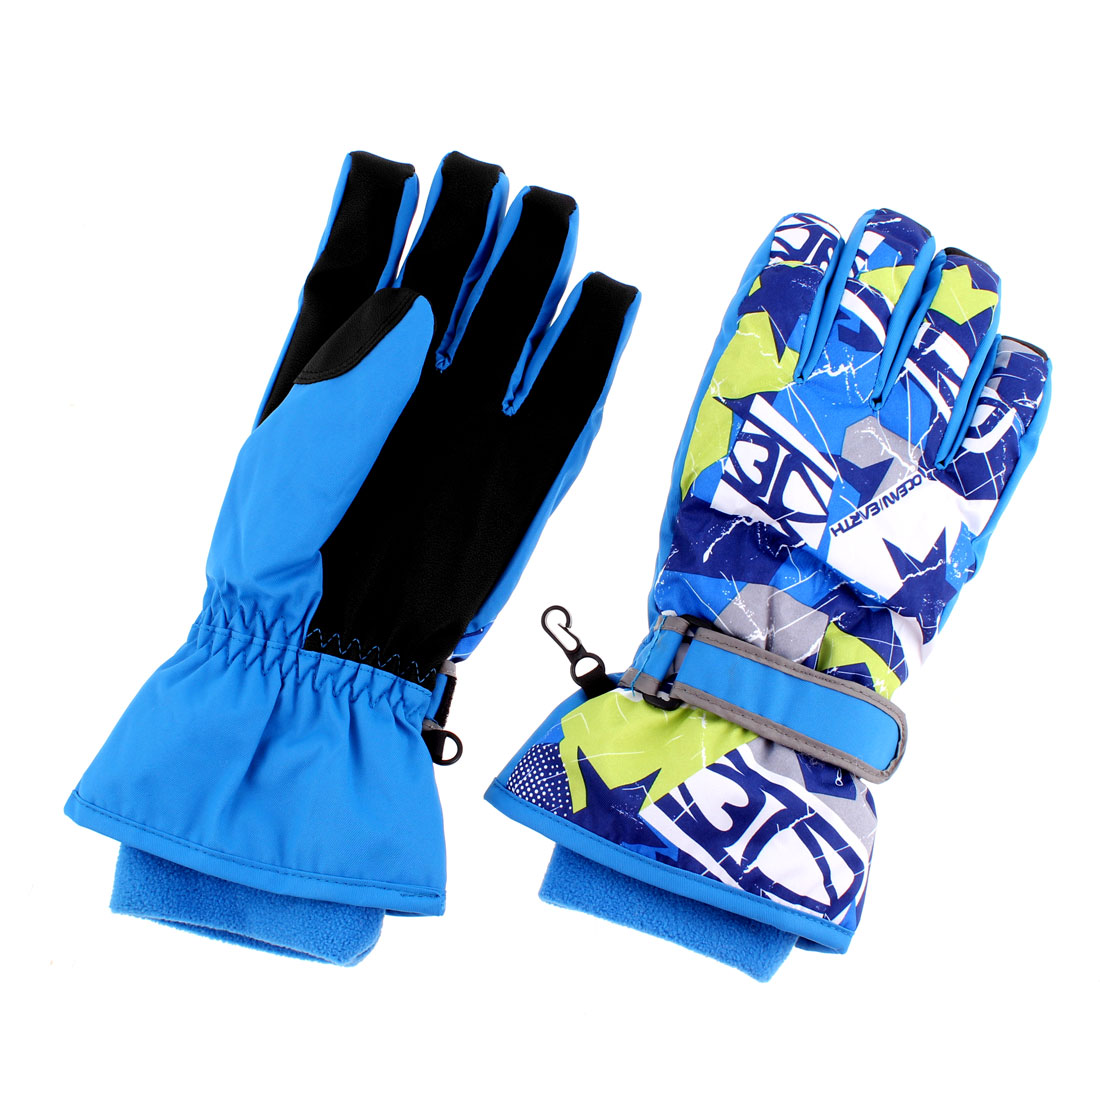 Adults Winter Ski Snowboarding Gloves Blue L Pair